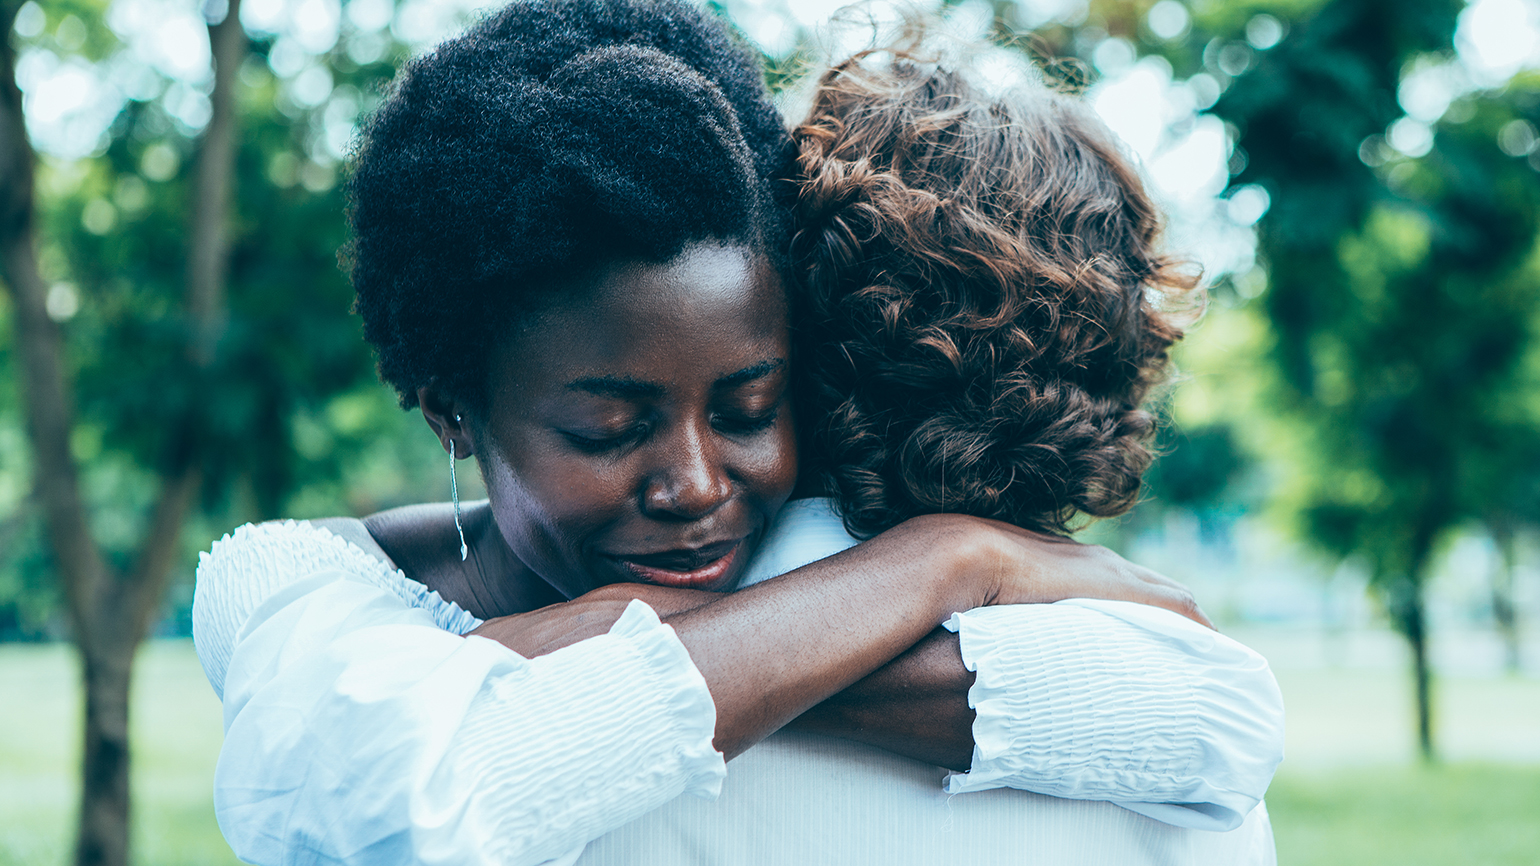 Two women engage in a forigiving hug